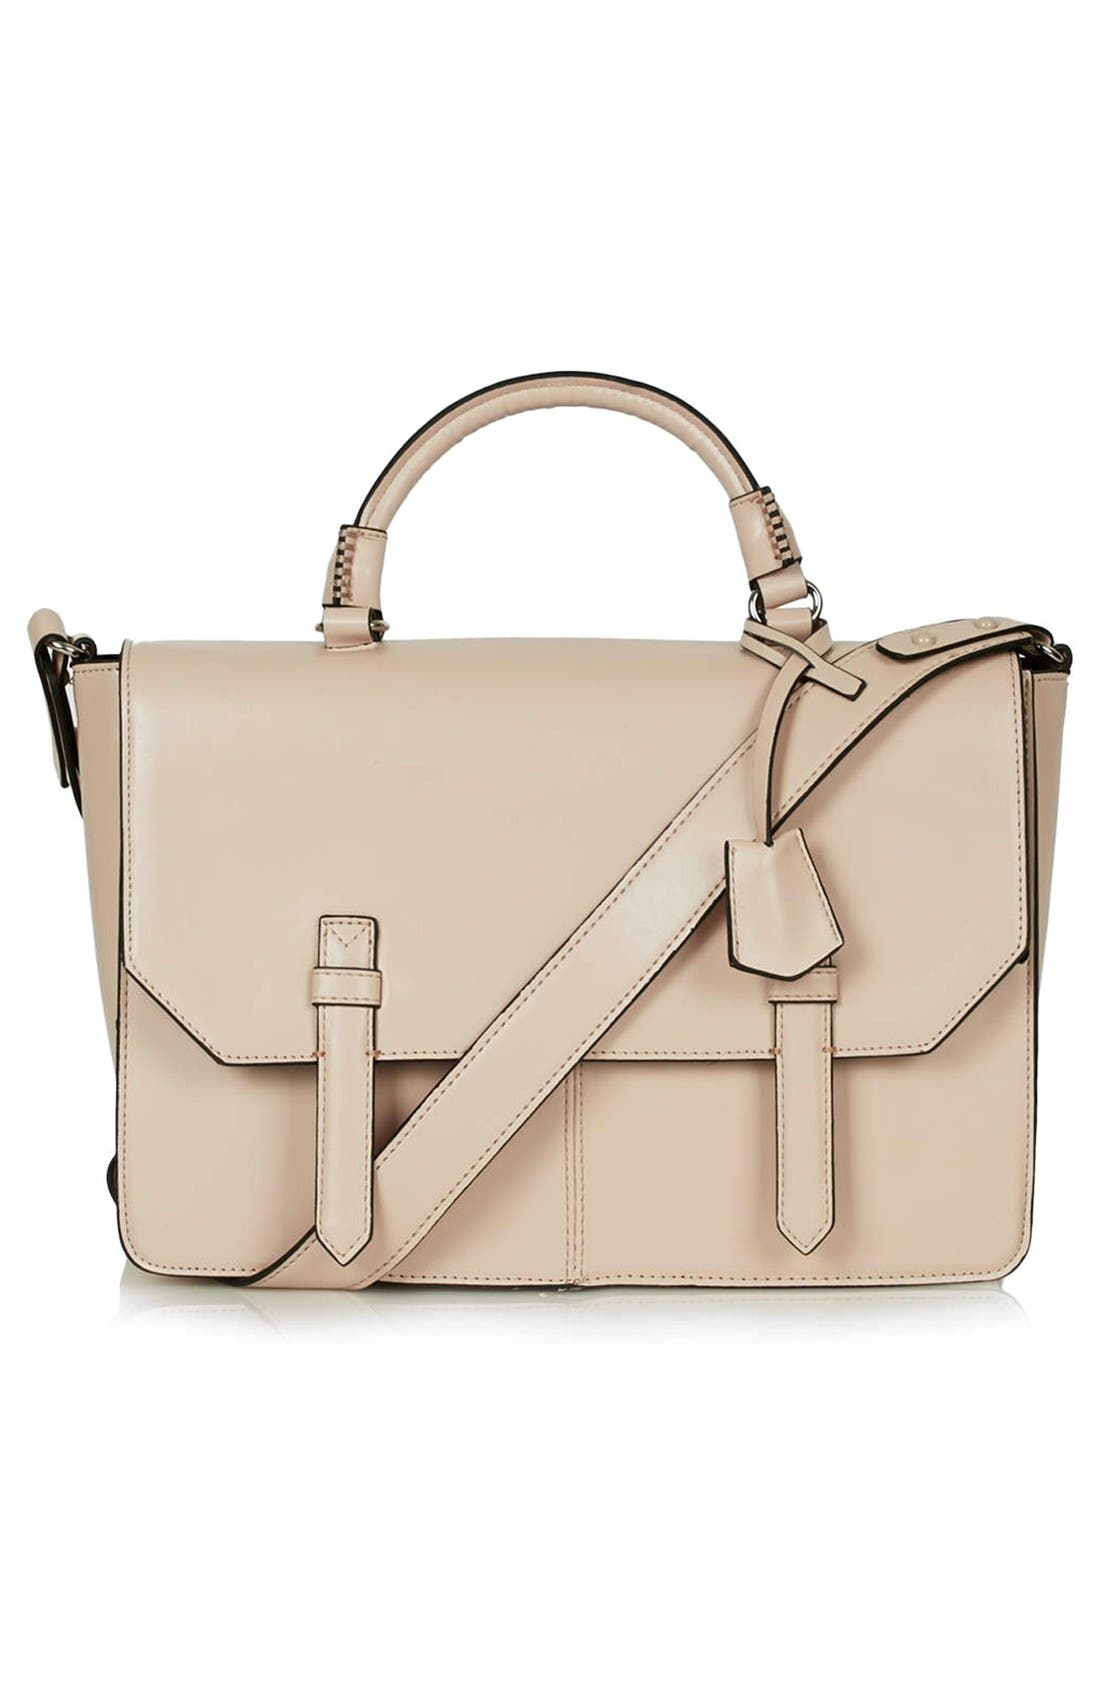 Main Image - Topshop 'Clean' Faux Leather Satchel